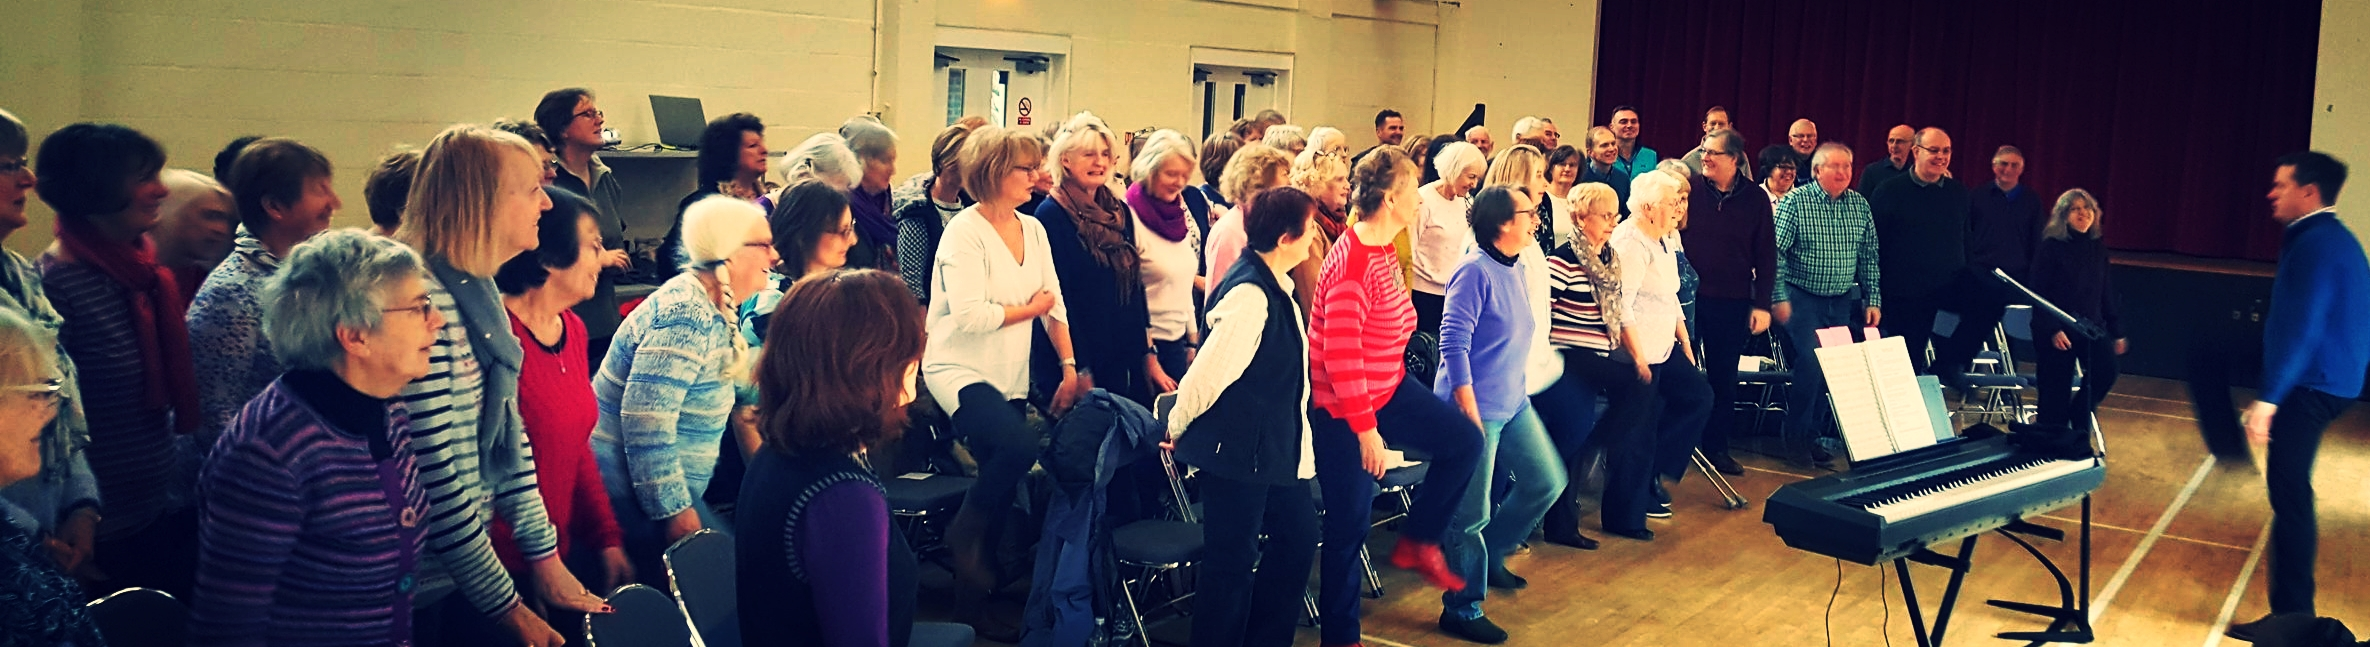 Kimpton Community Choir Singing Workshop - fun!